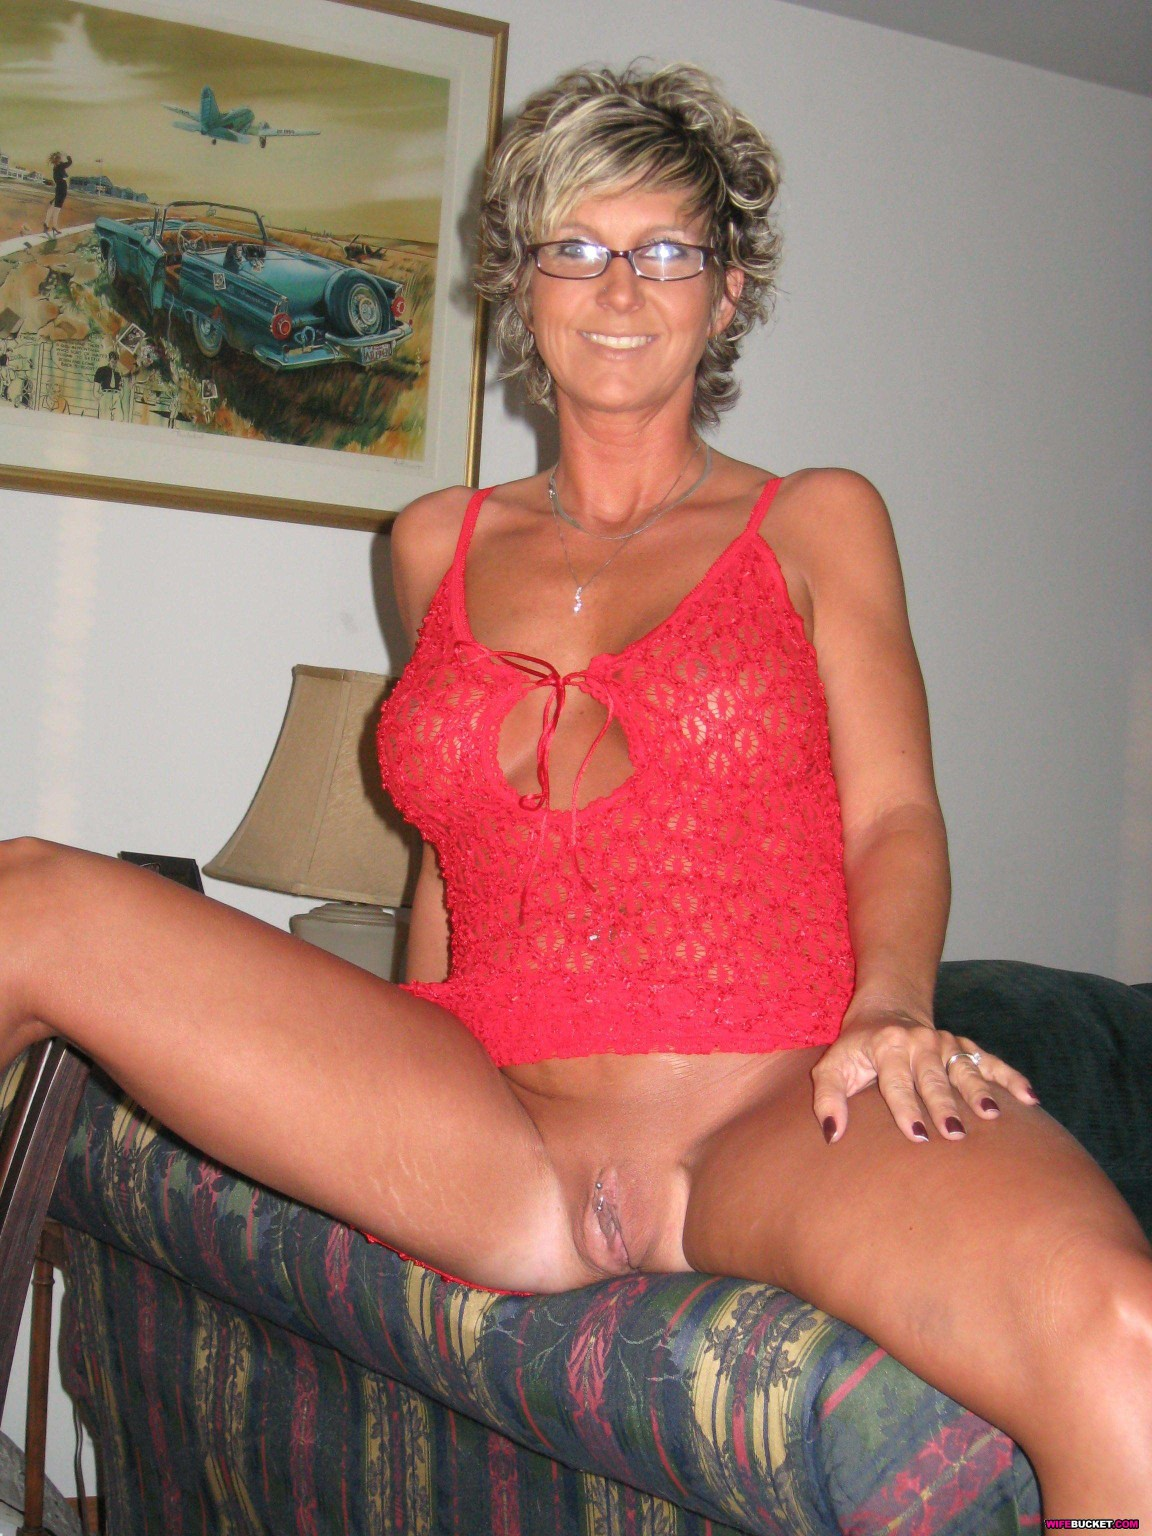 amateur mature nudes Real